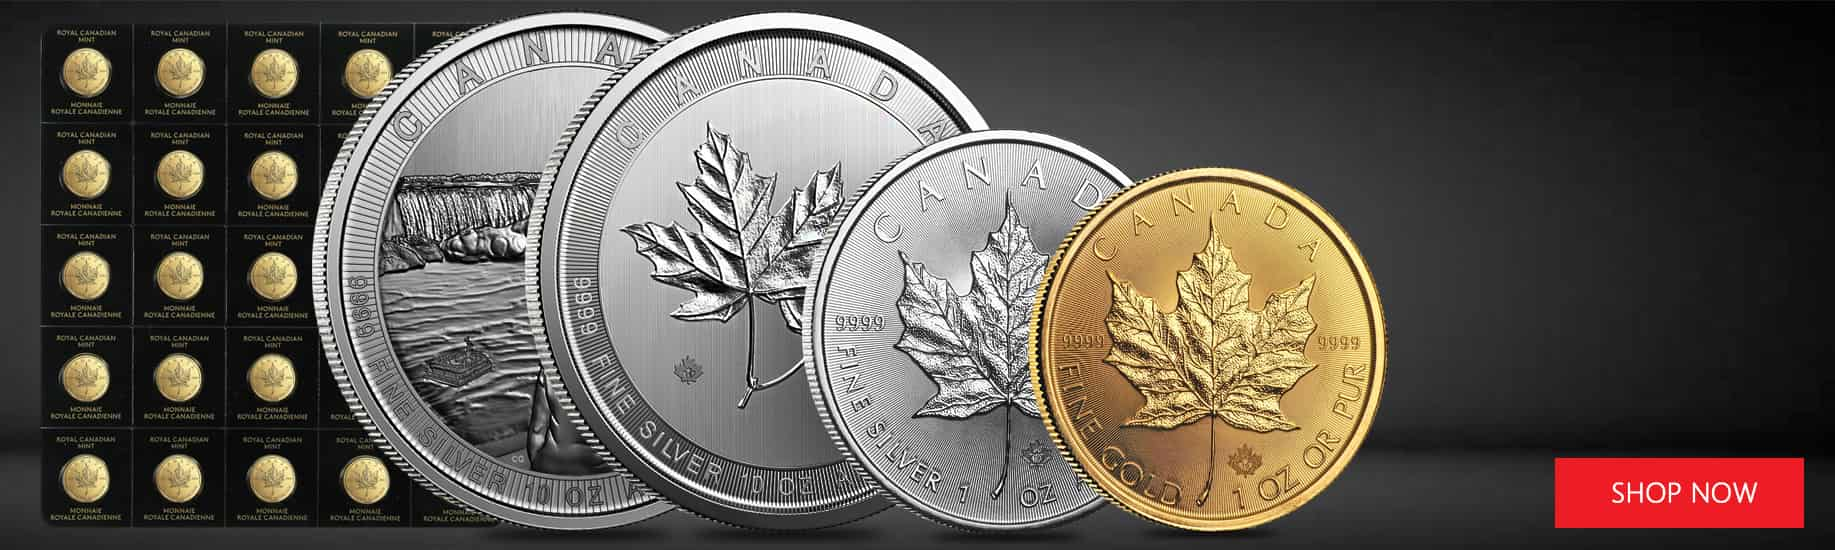 Royal Canadian Mint Coins Bars